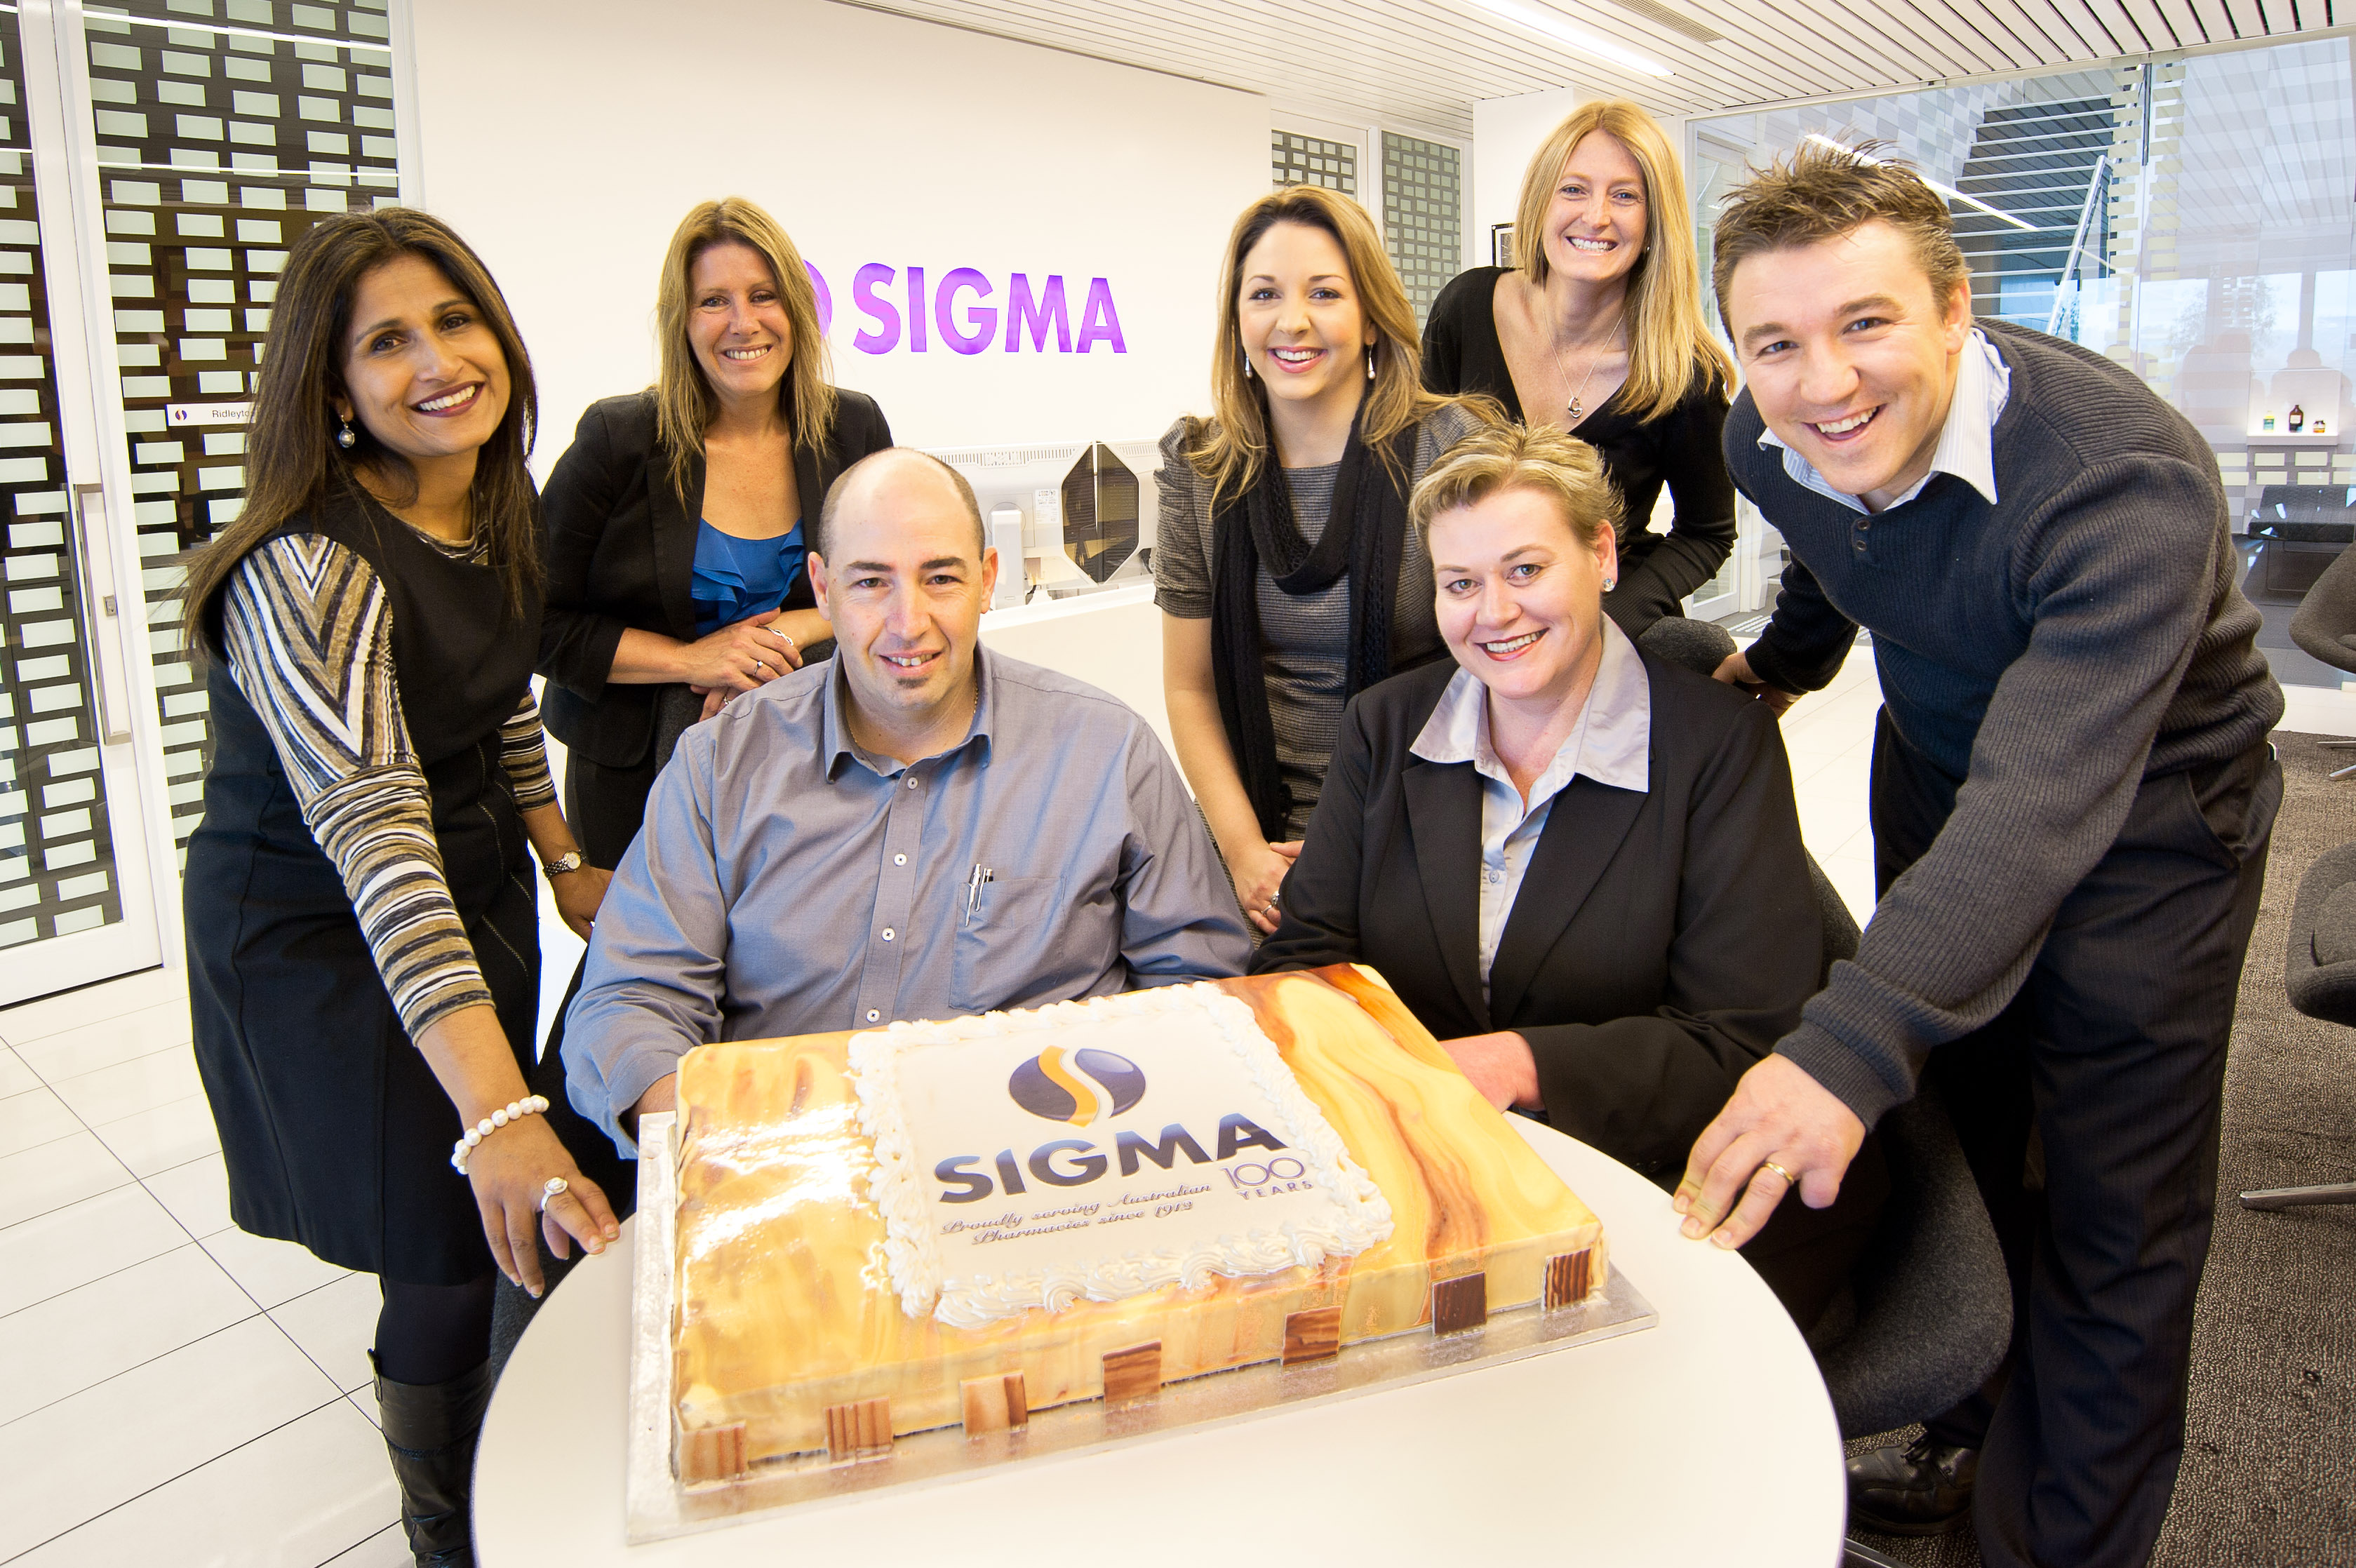 Happy Birthday Sigma!